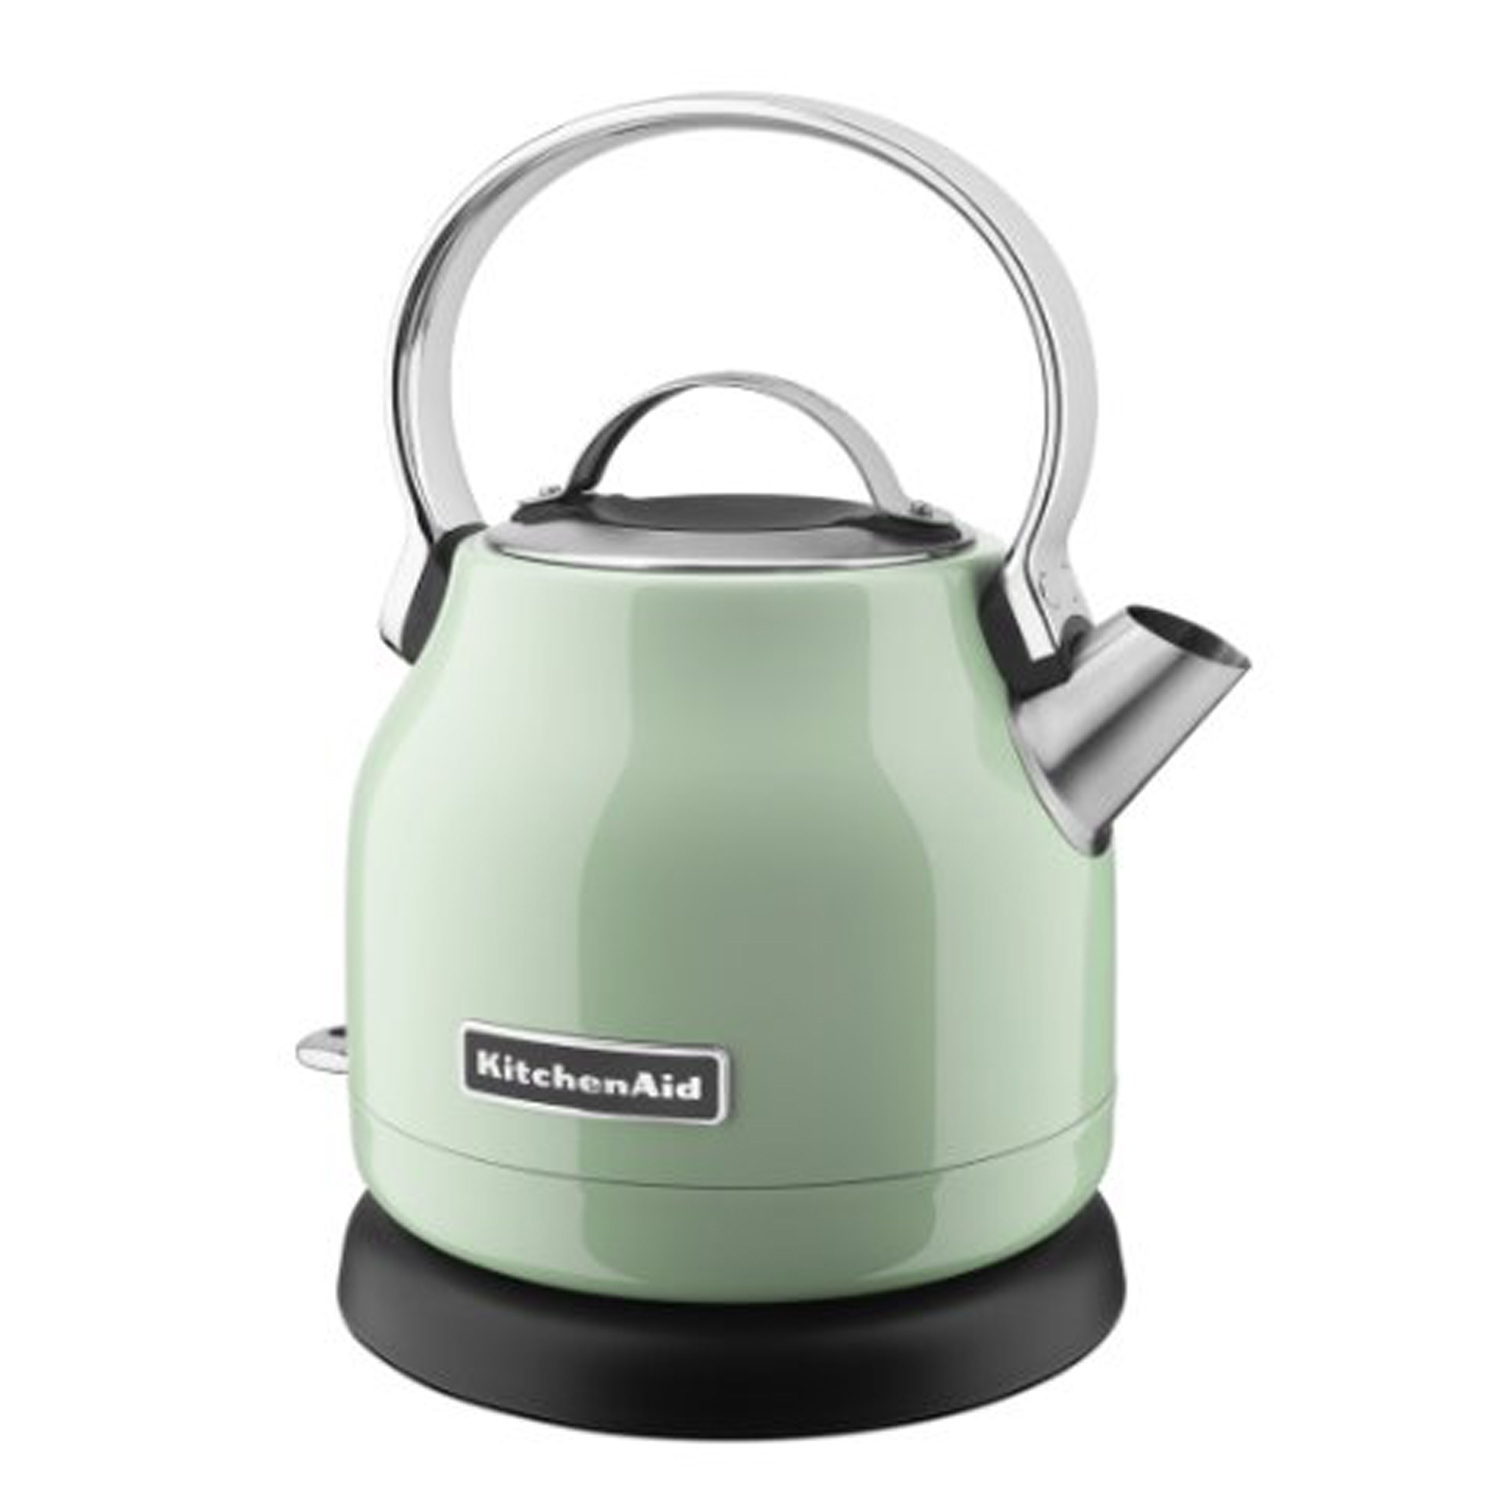 KitchenAid KEK1222PT 1.25-L Electric Kettle Pistachio